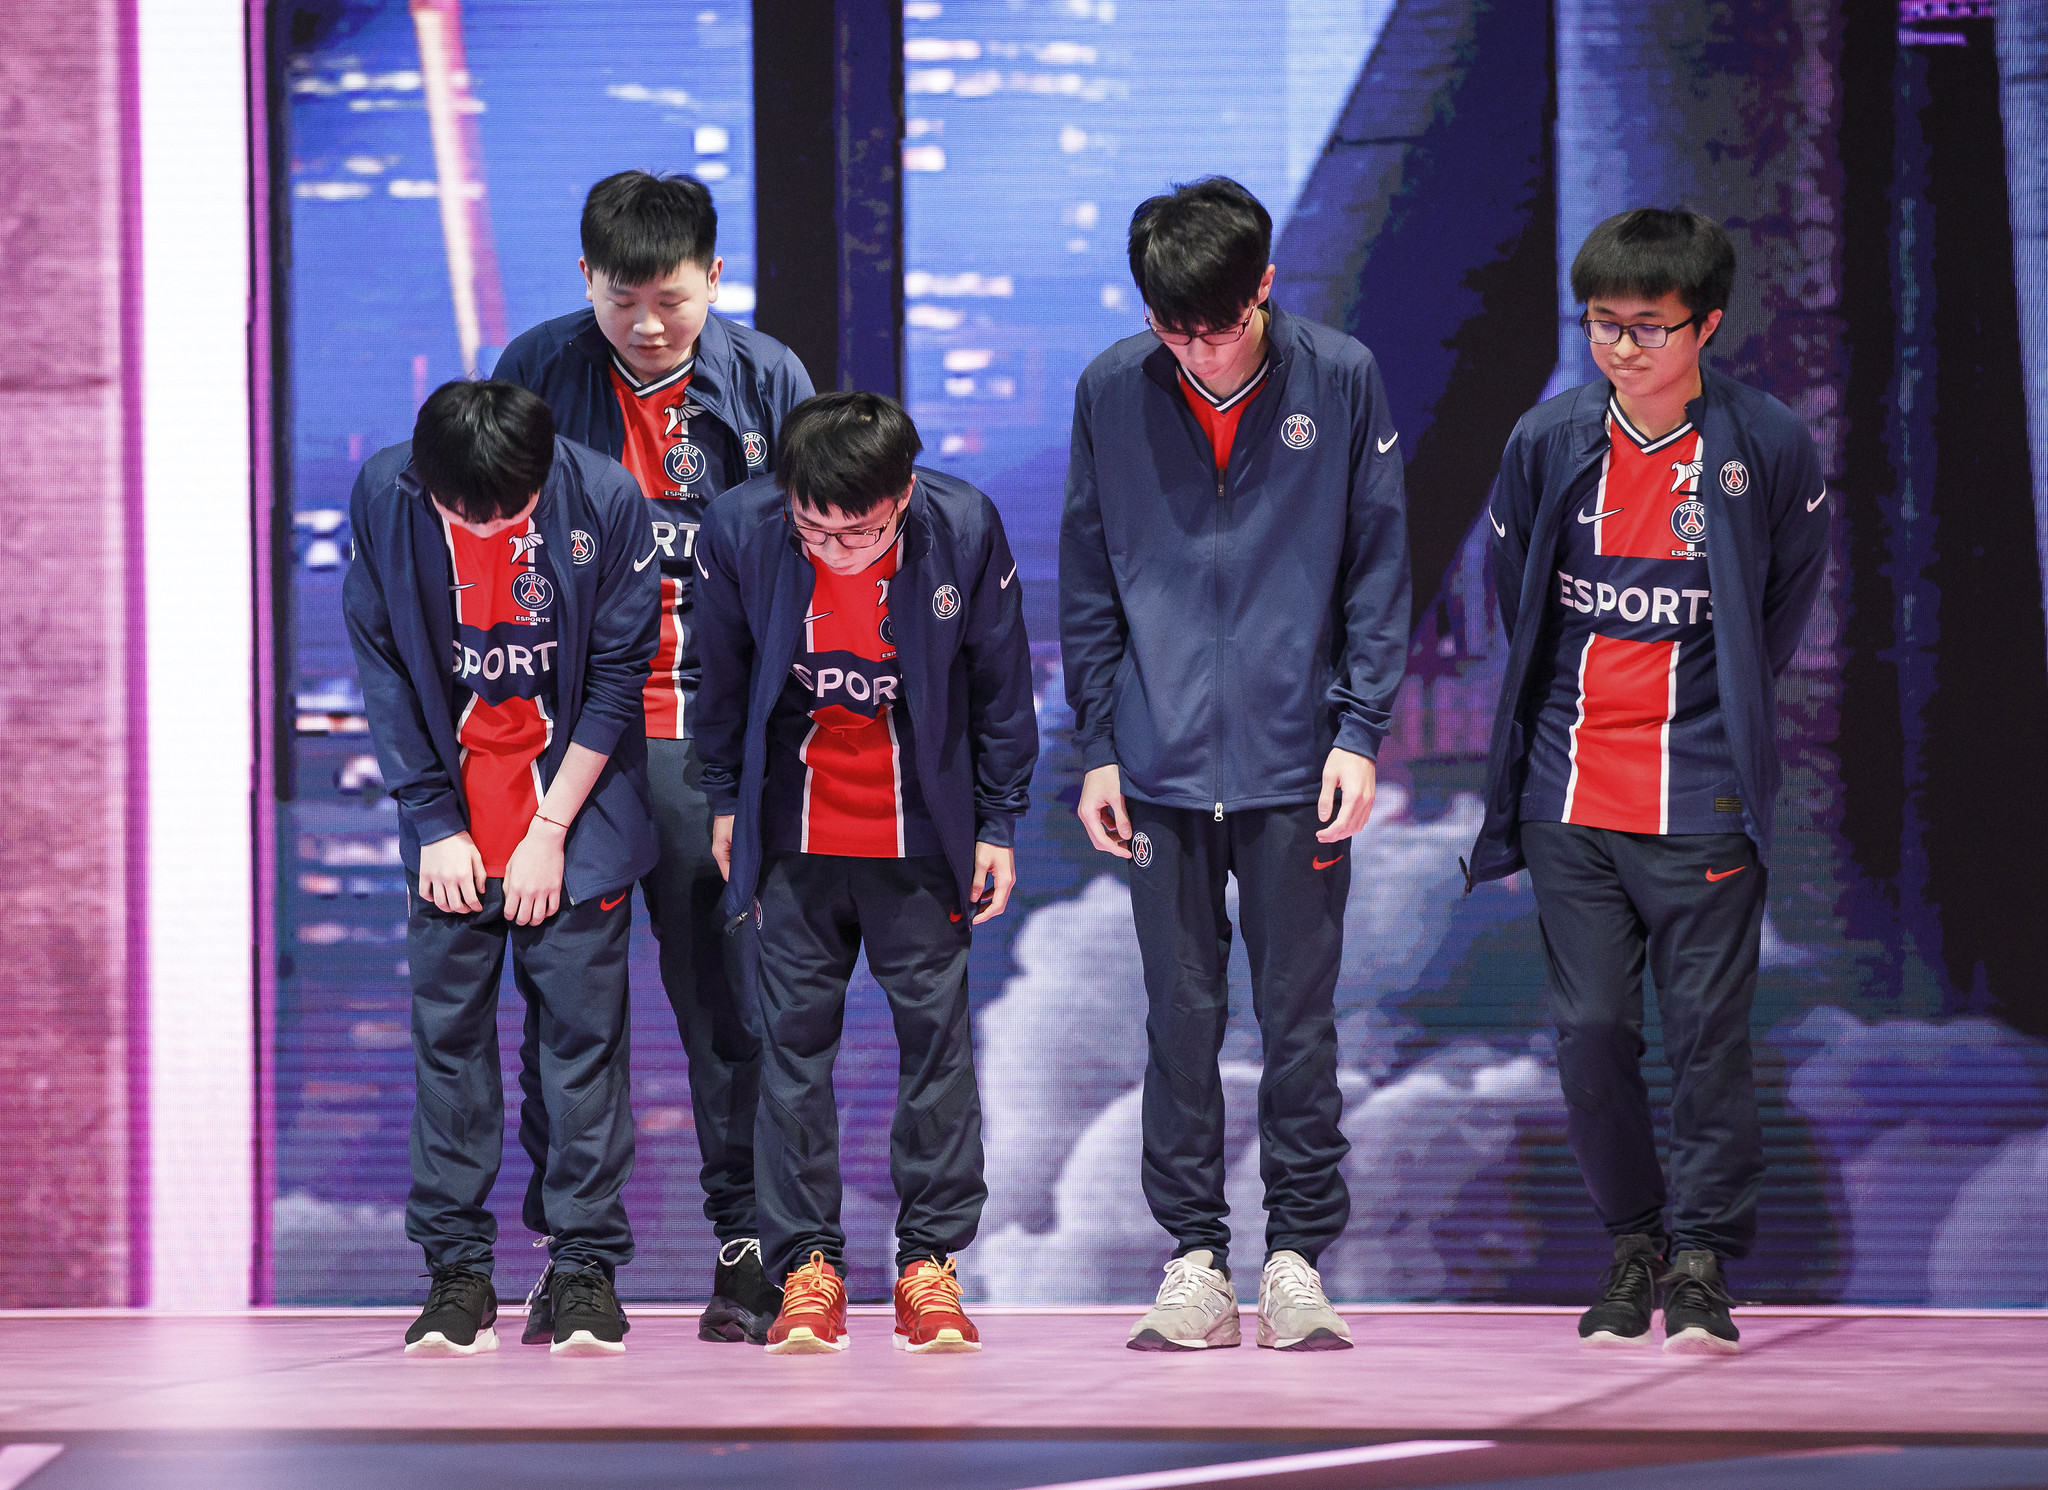 League Of Legends Worlds 2020 Psg Talon Is The First Team To Qualify For Group Stage From The Play In Inven Global